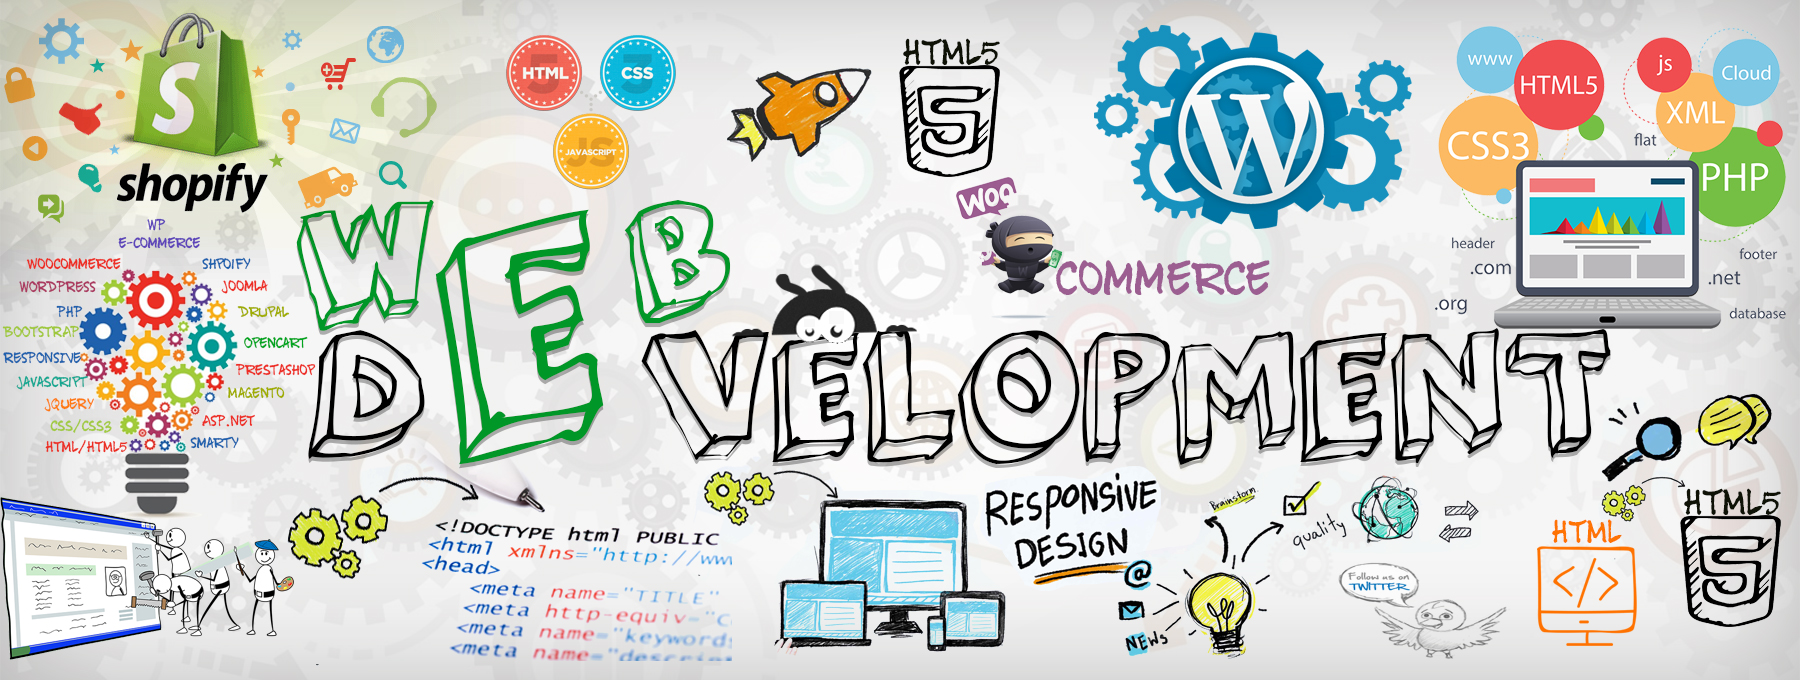 Avail Custom Web Development Services - Sahil Popli